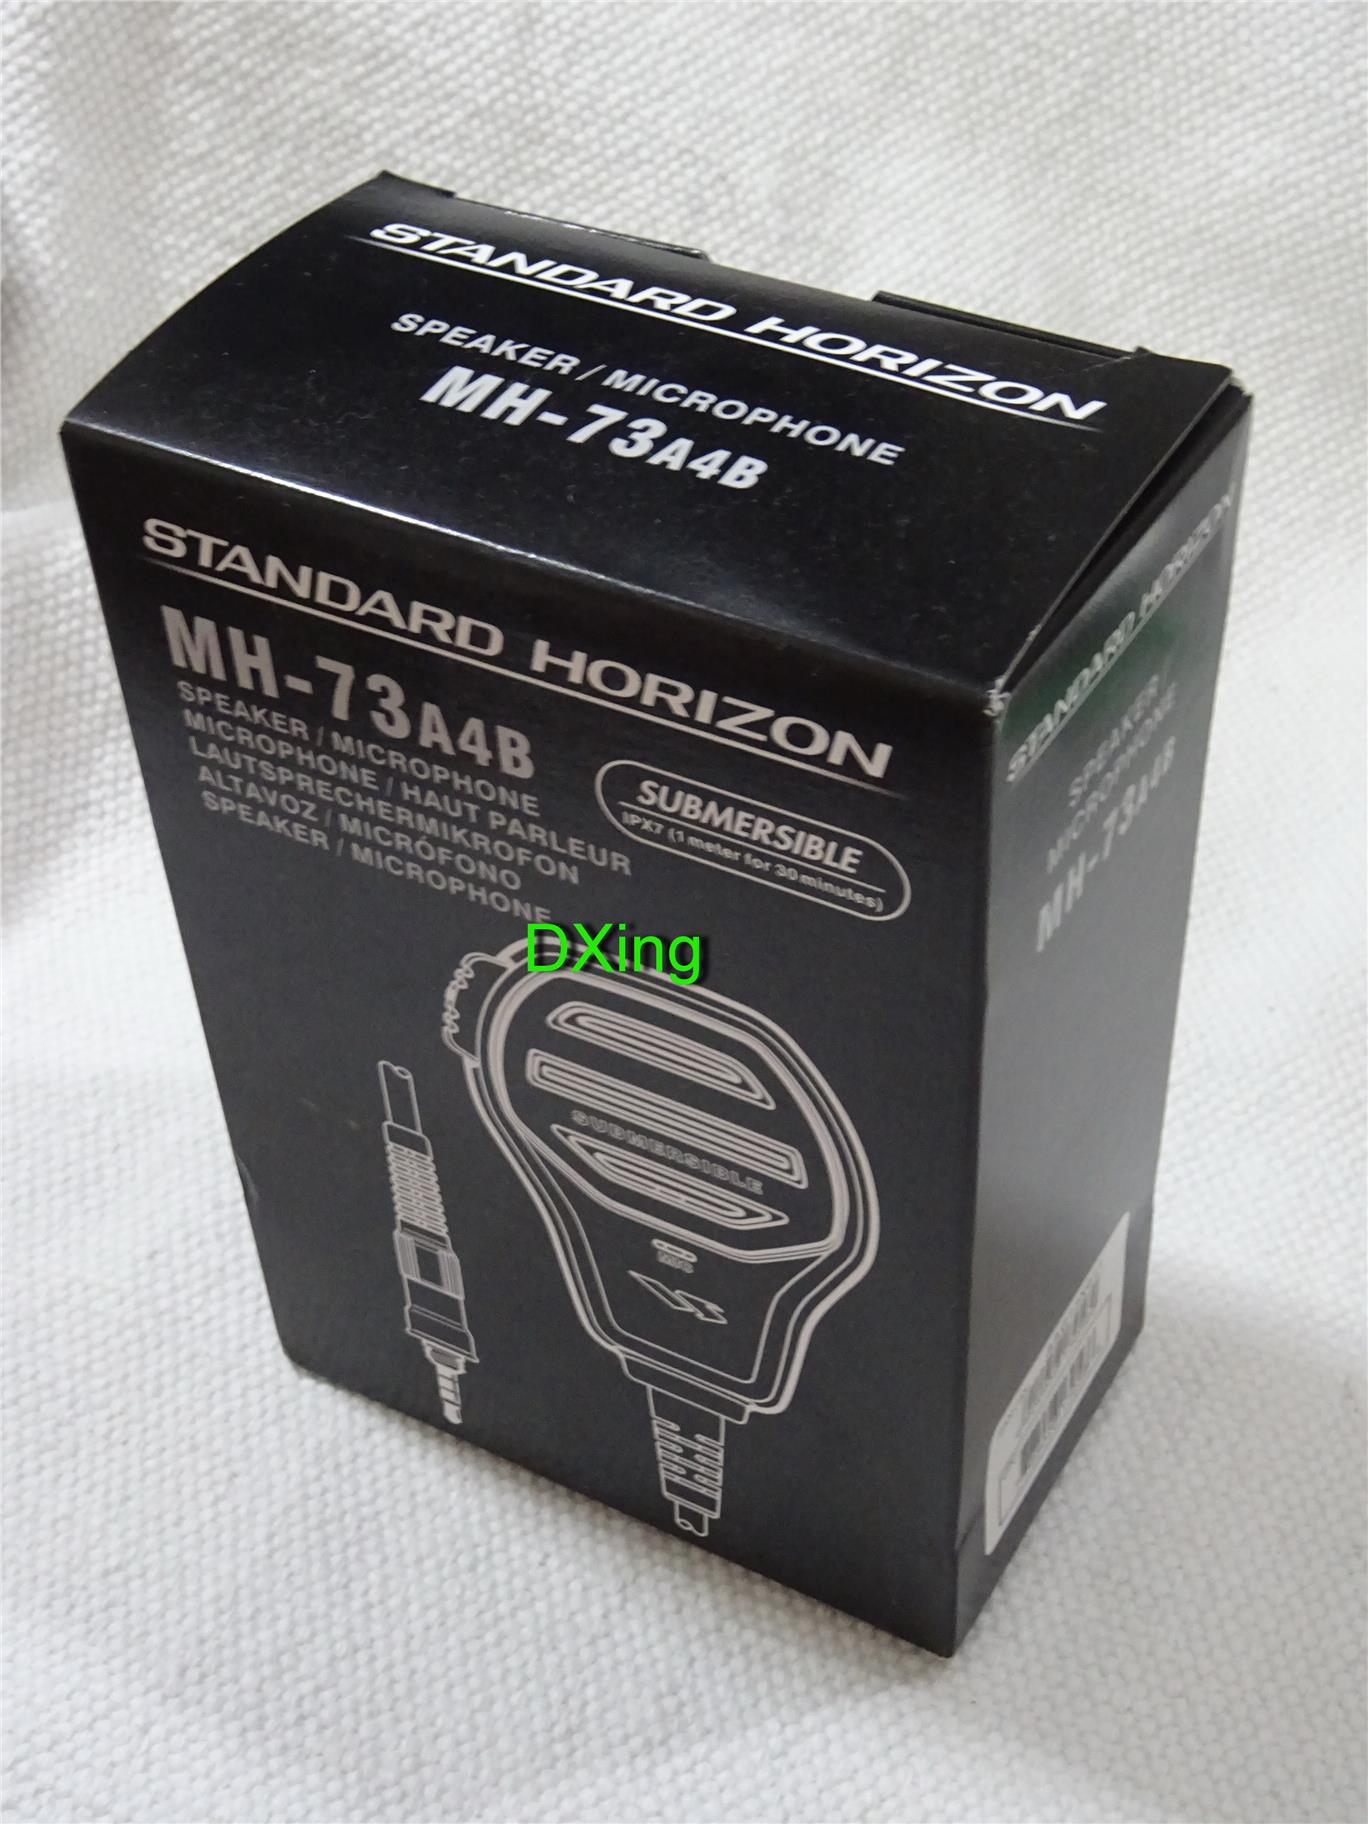 YAESU MH-73A4B Submersible Speaker/Microphone@ ptt # standard horizon